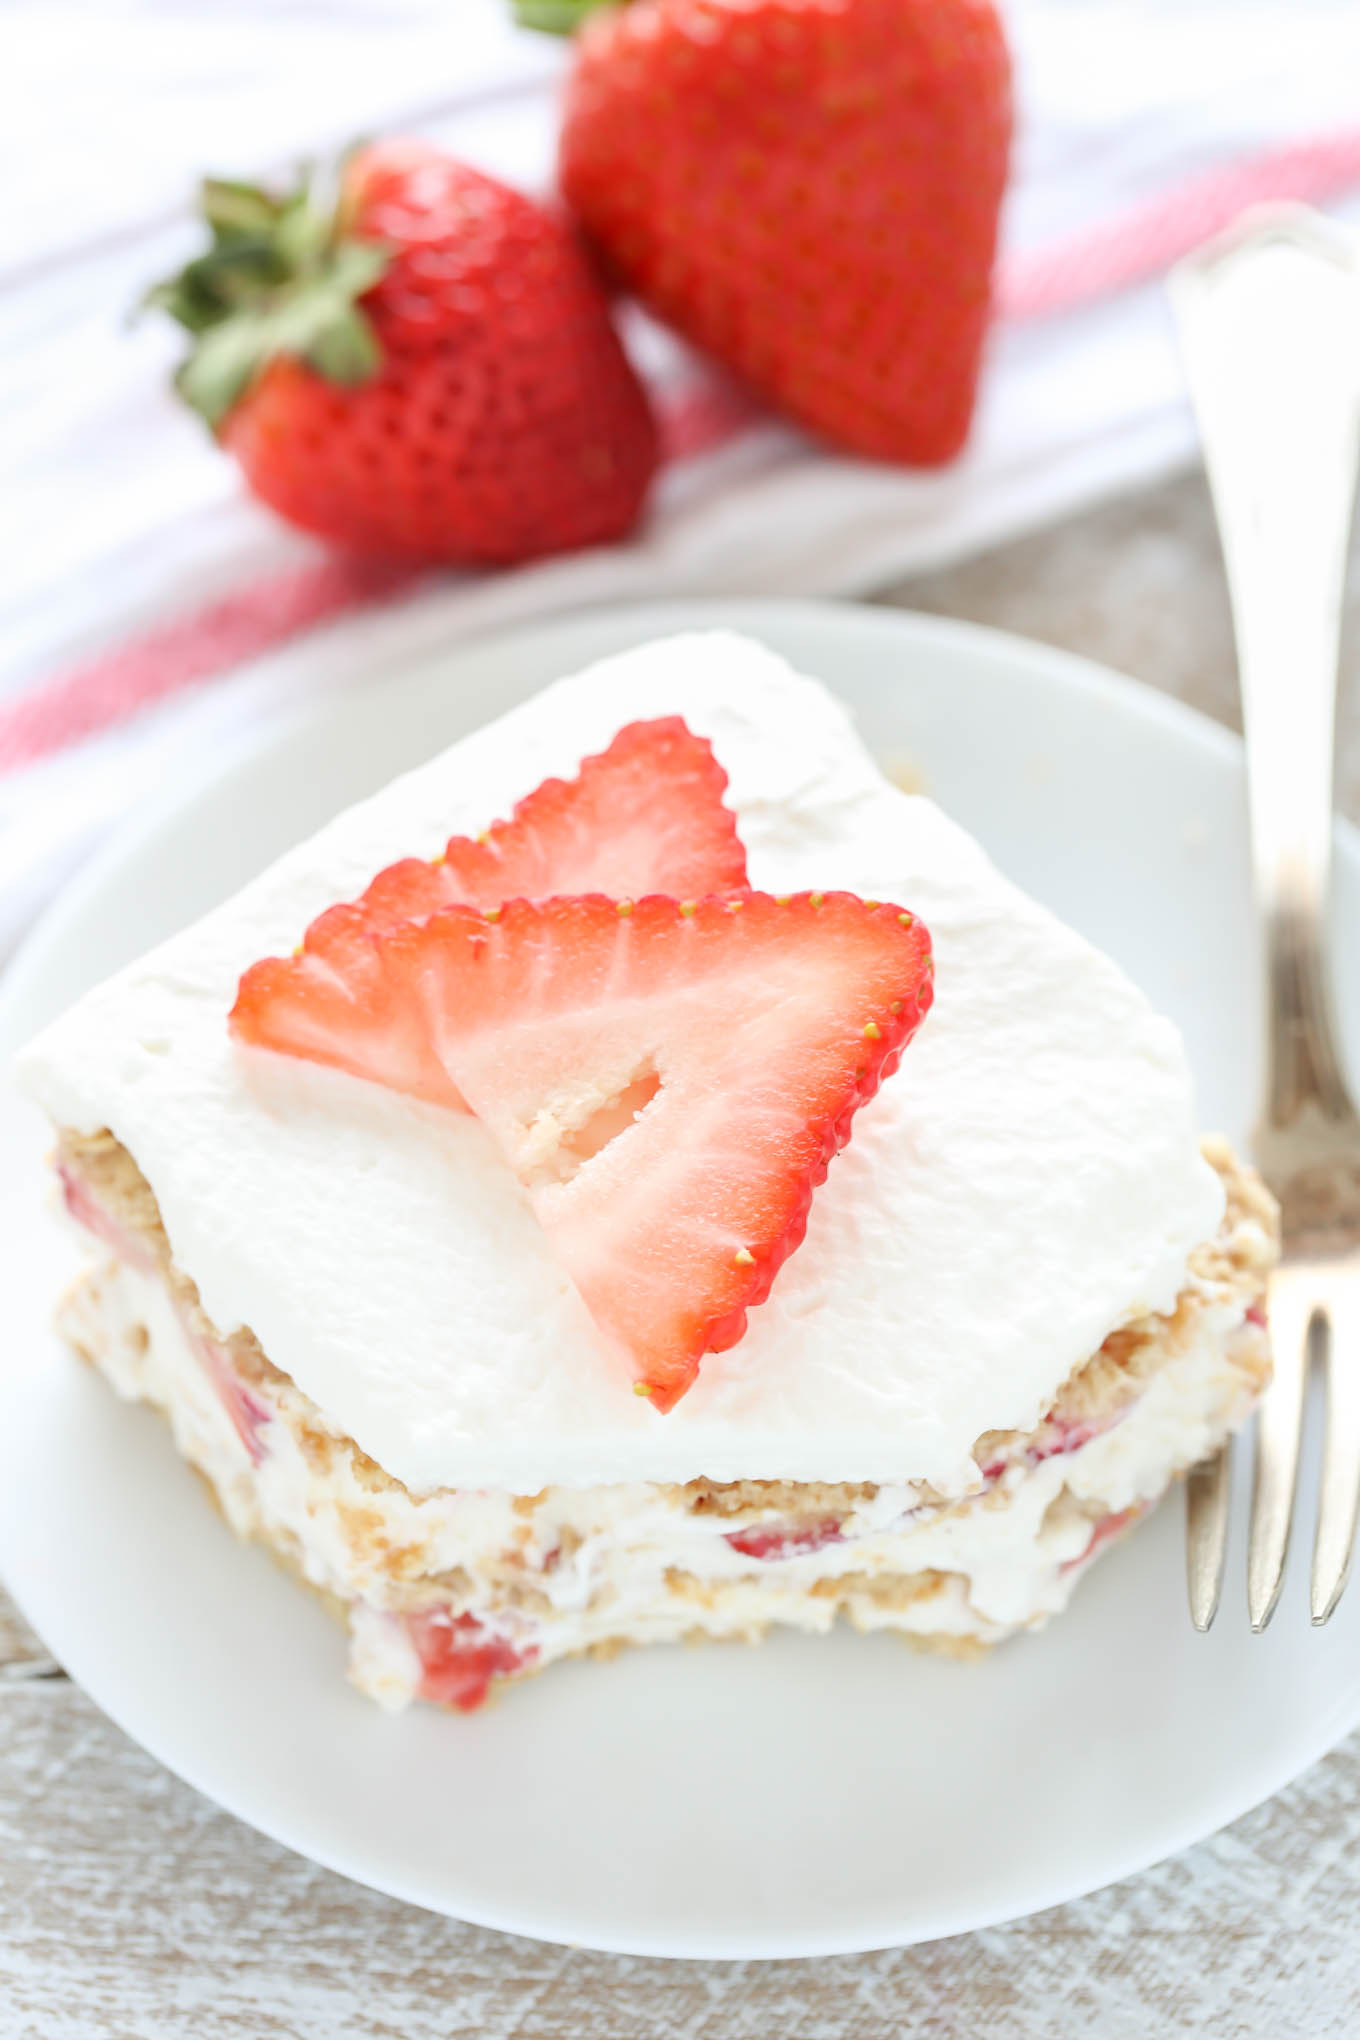 A slice of strawberry graham cracker icebox cake on a white plate with a fork. Two fresh berries rest in the background on a towel.